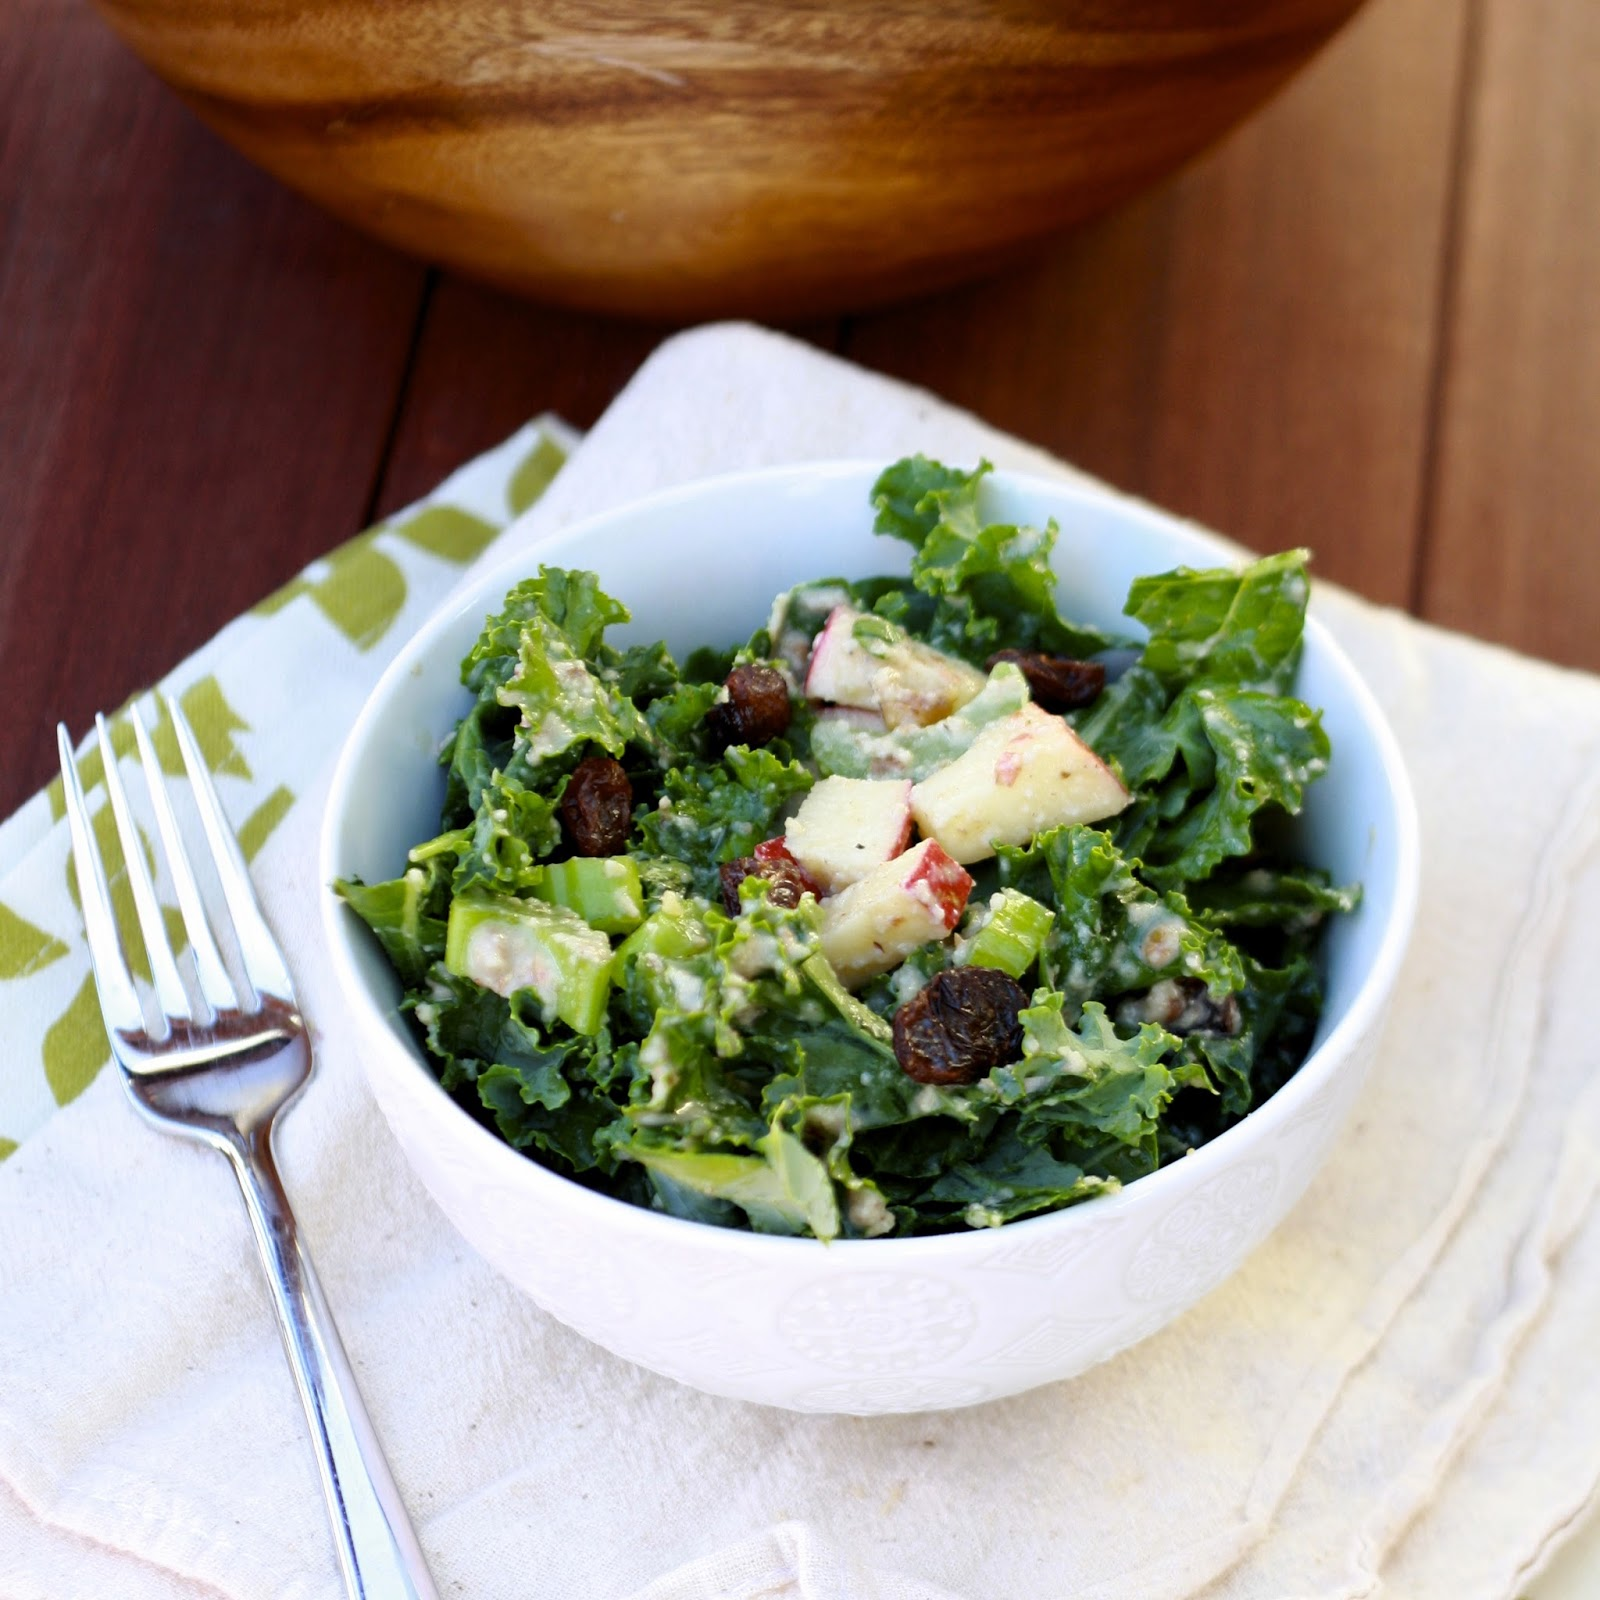 Kale Waldorf Salad | The Sweets Life